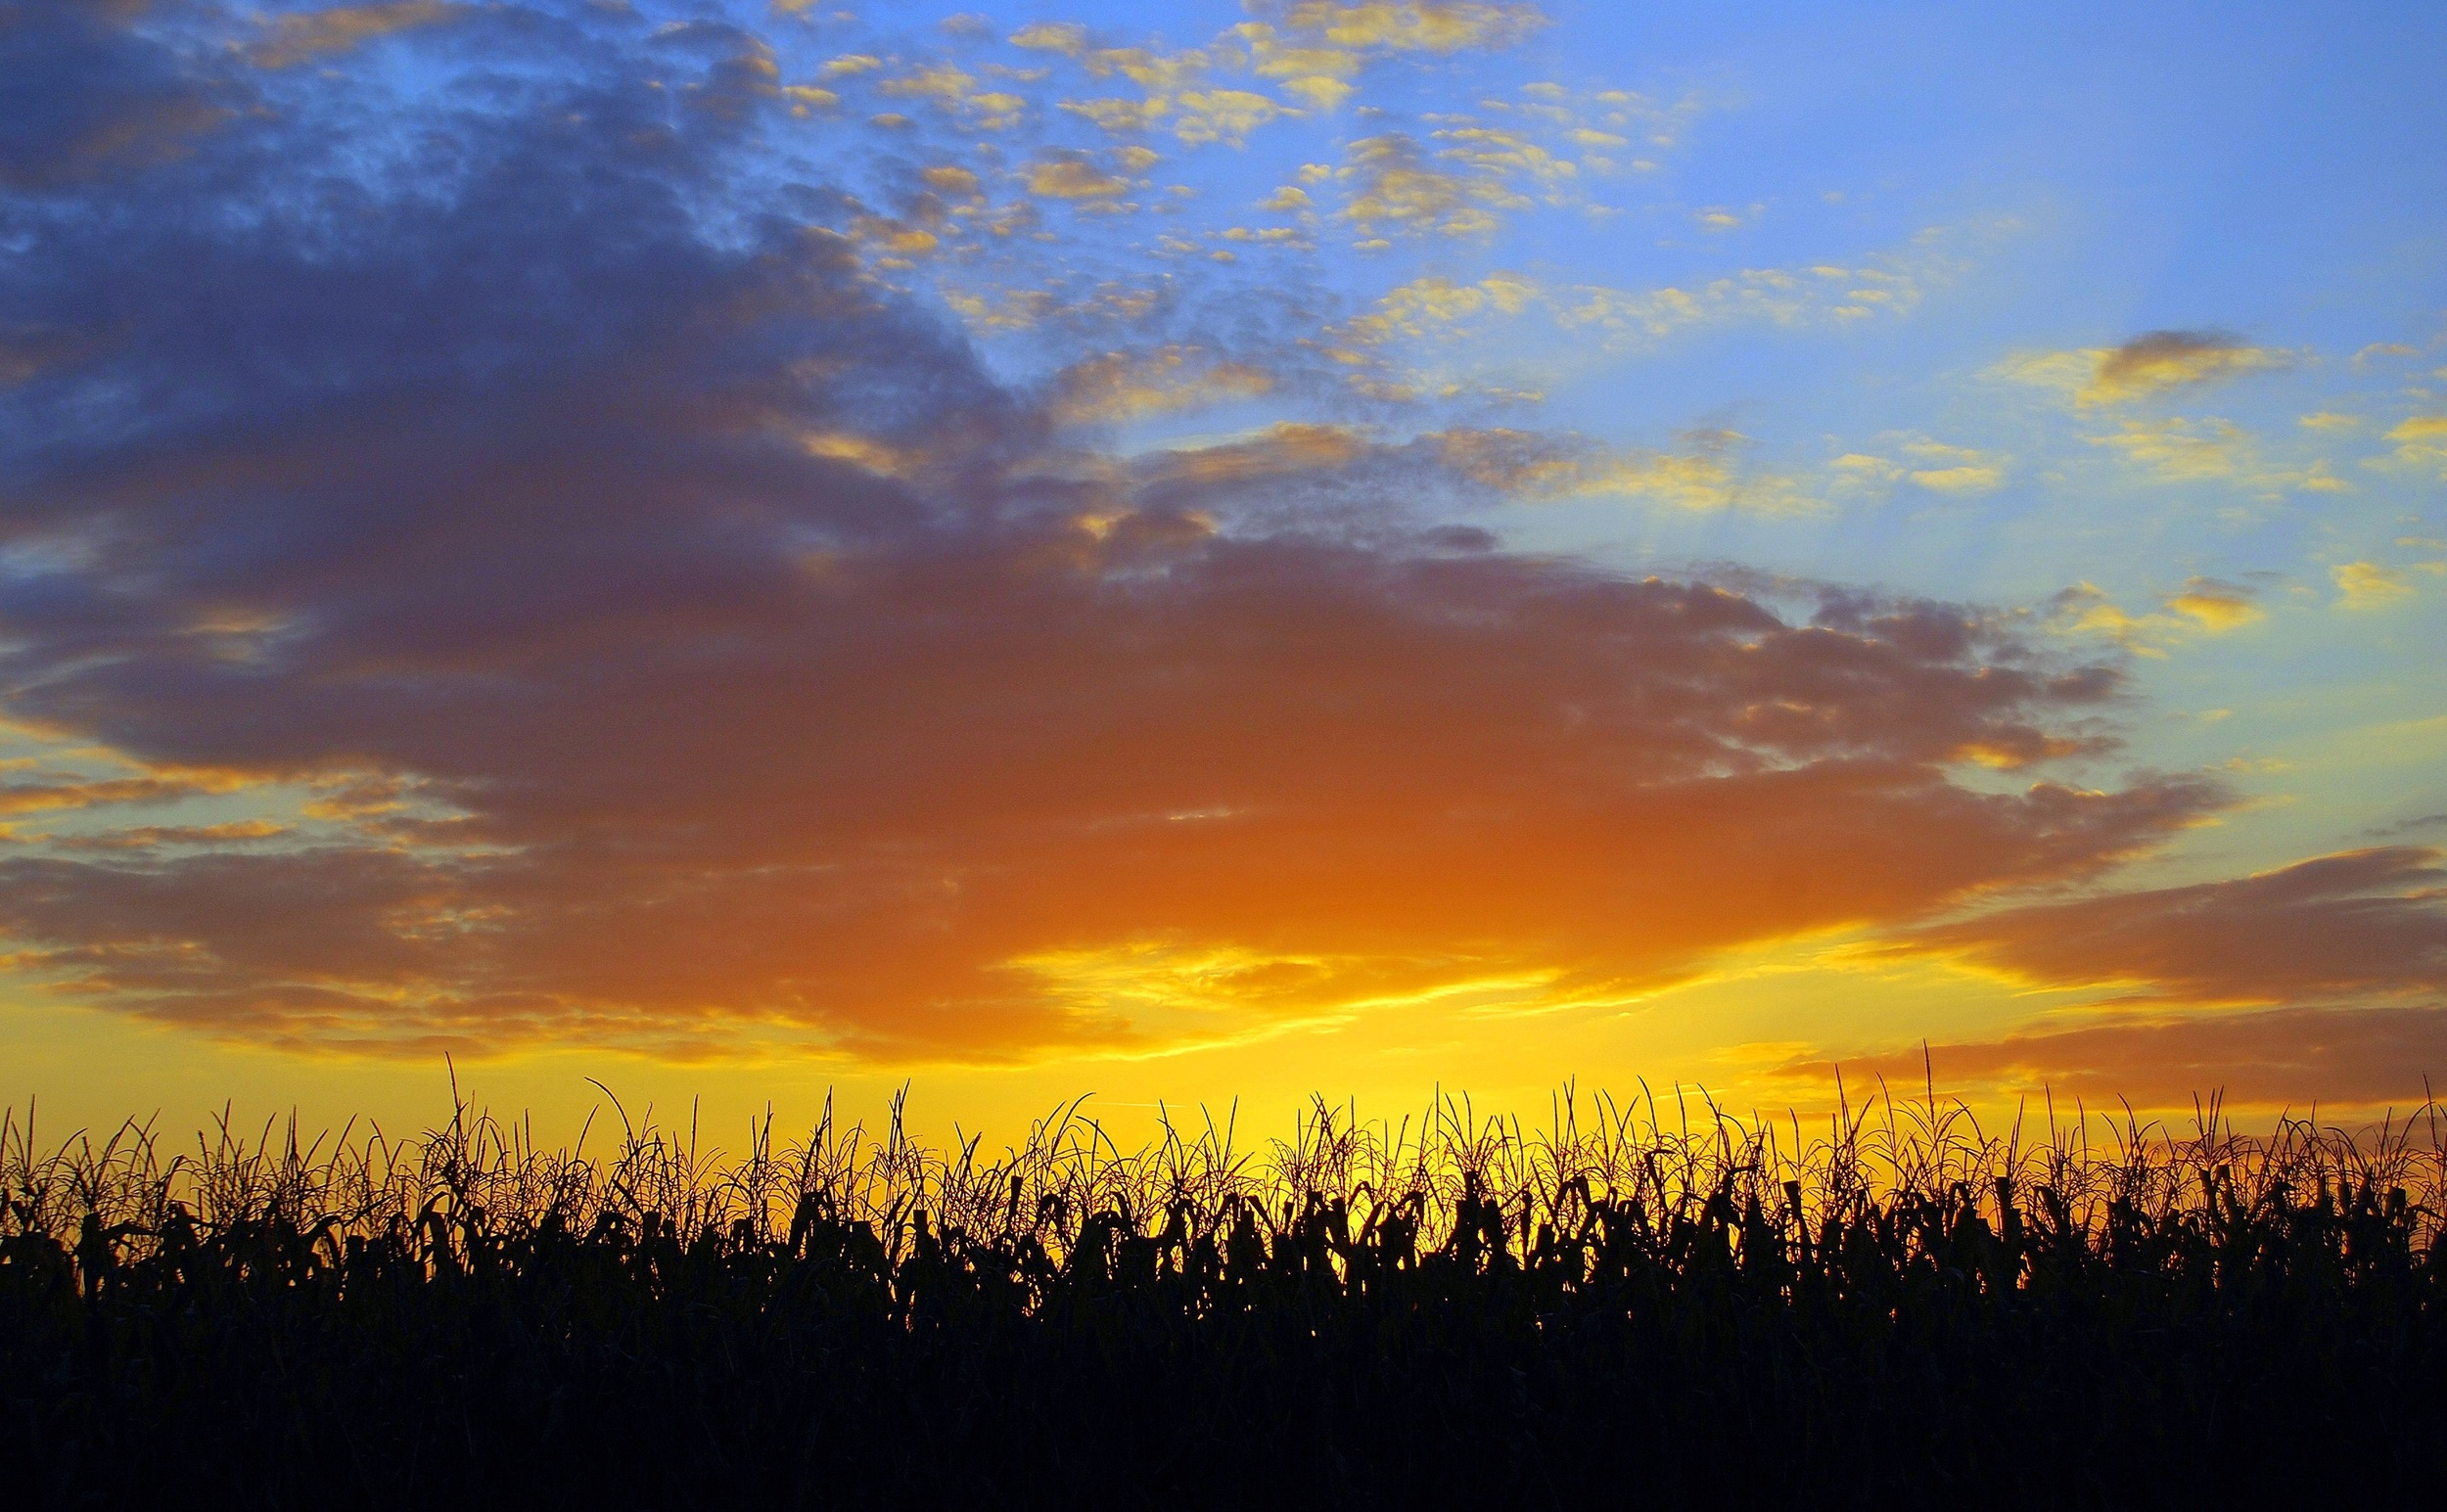 Iowa Beauty (Above the Corn) Nathan Fischer 2008 Photograph 11x14 or custom